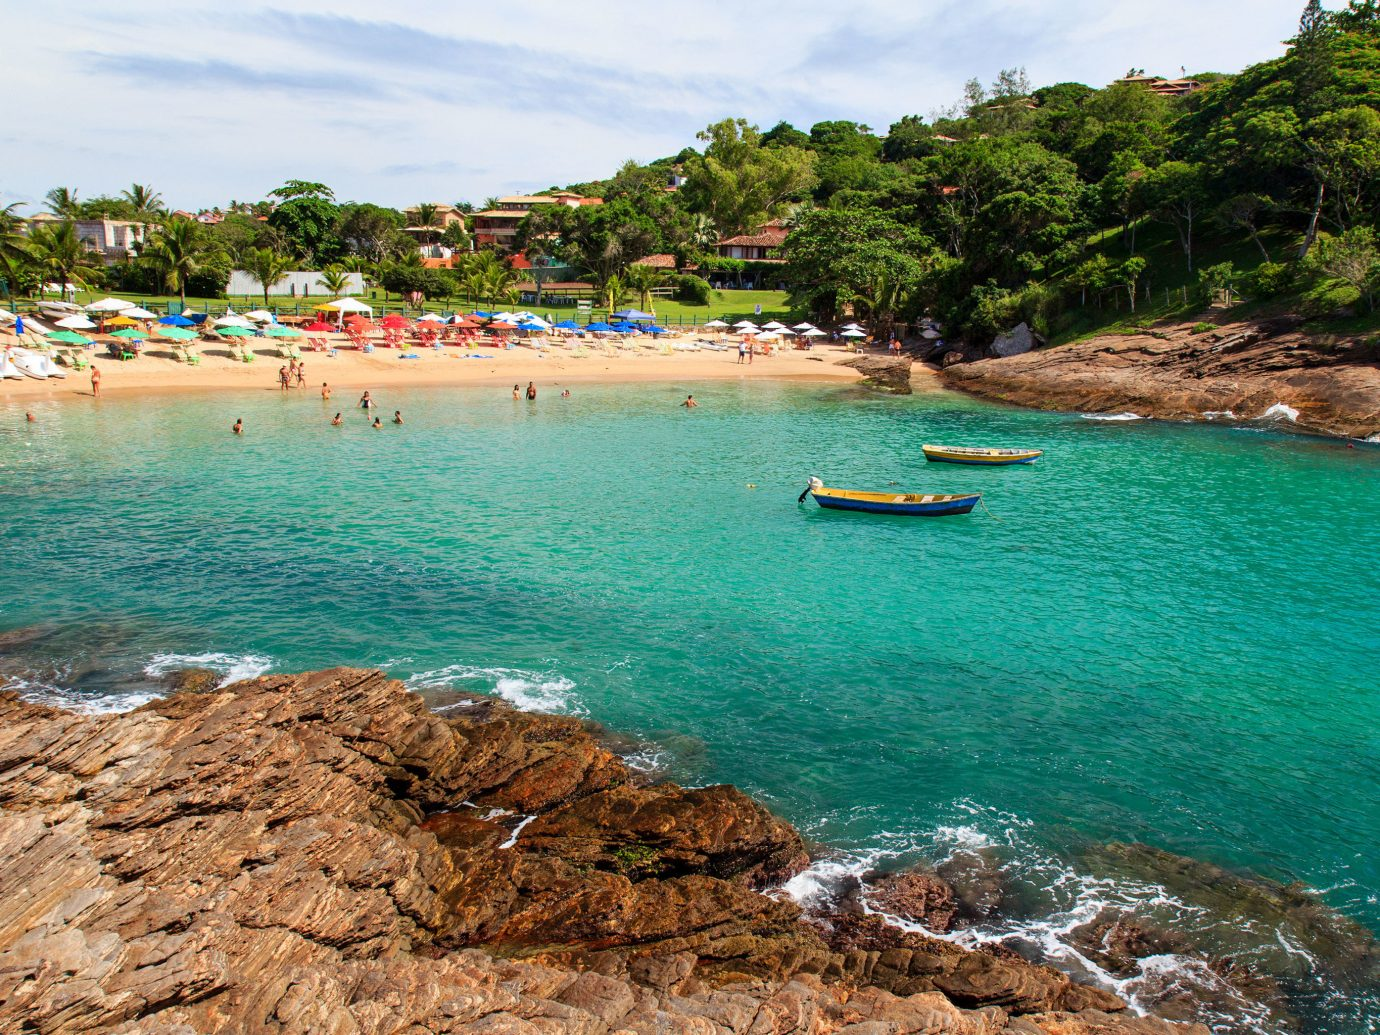 Beaches Brazil Trip Ideas water outdoor sky Nature Sea Beach coastal and oceanic landforms body of water Coast rock shore Ocean bay tourism tropics inlet vacation cove tree cape Lagoon wave sand promontory Island Boat landscape leisure caribbean reef lined swimming line day sandy